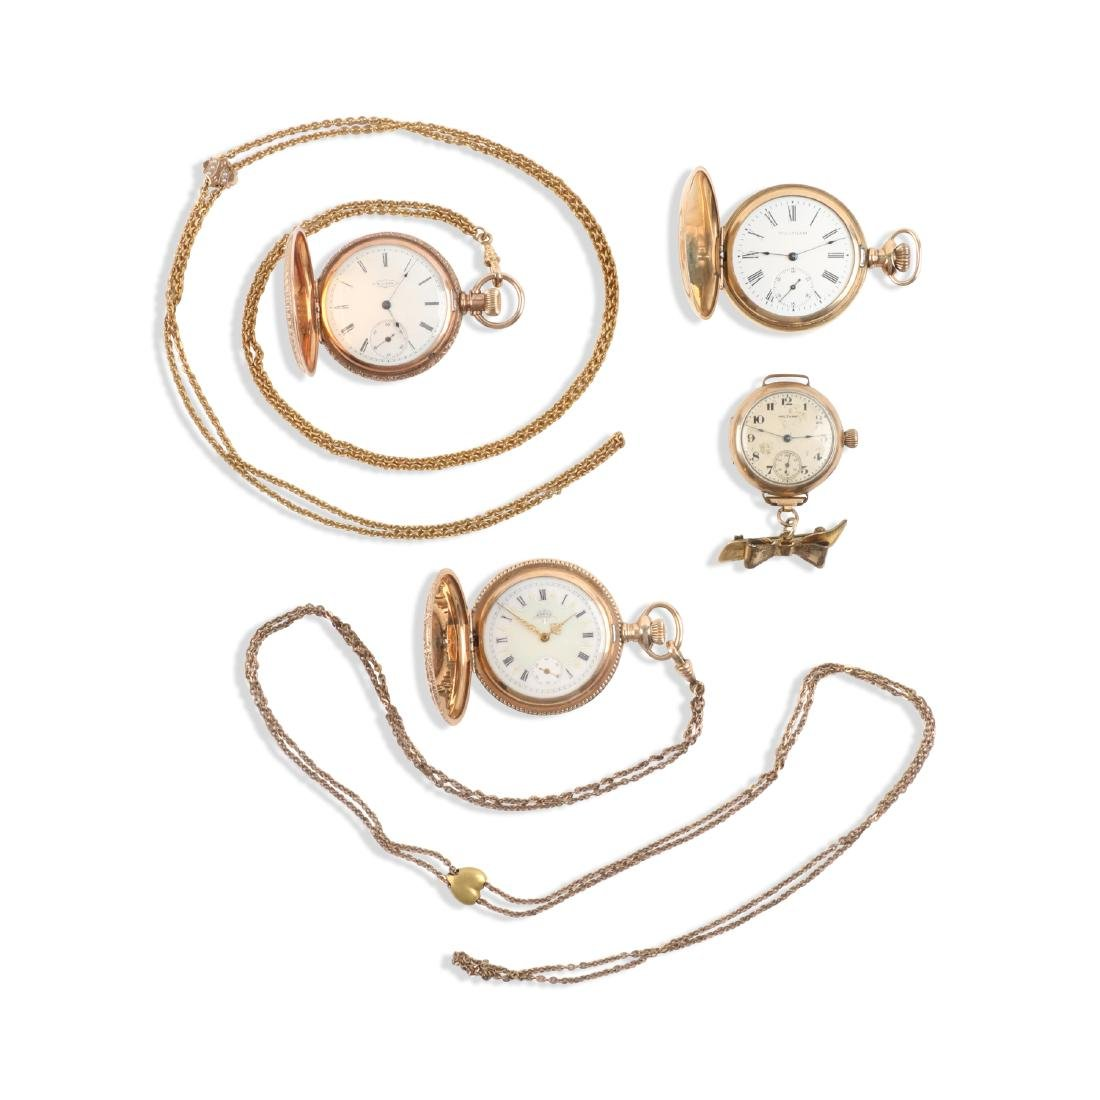 Waltham, Elgin, Lady's Pocket Watches & Chains